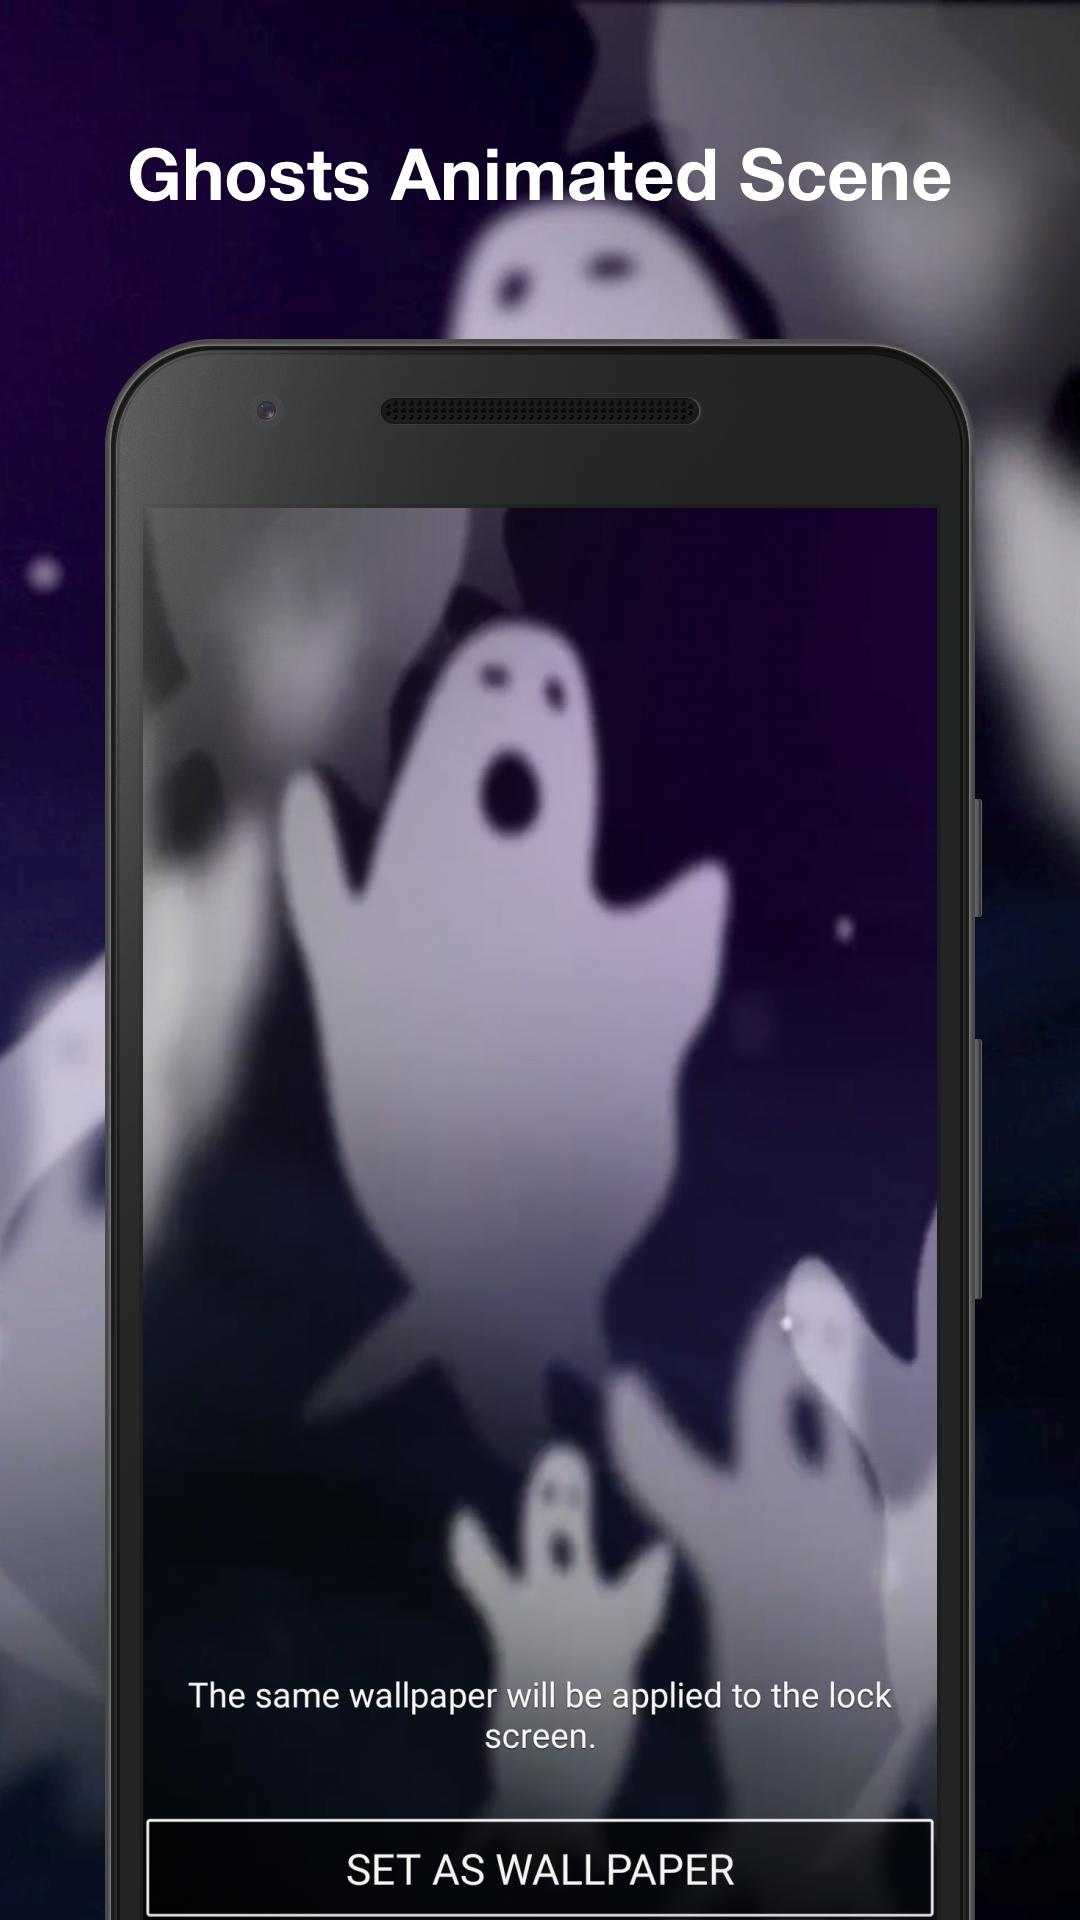 Download 80 Koleksi Wallpaper Animasi Hantu Gratis Terbaru